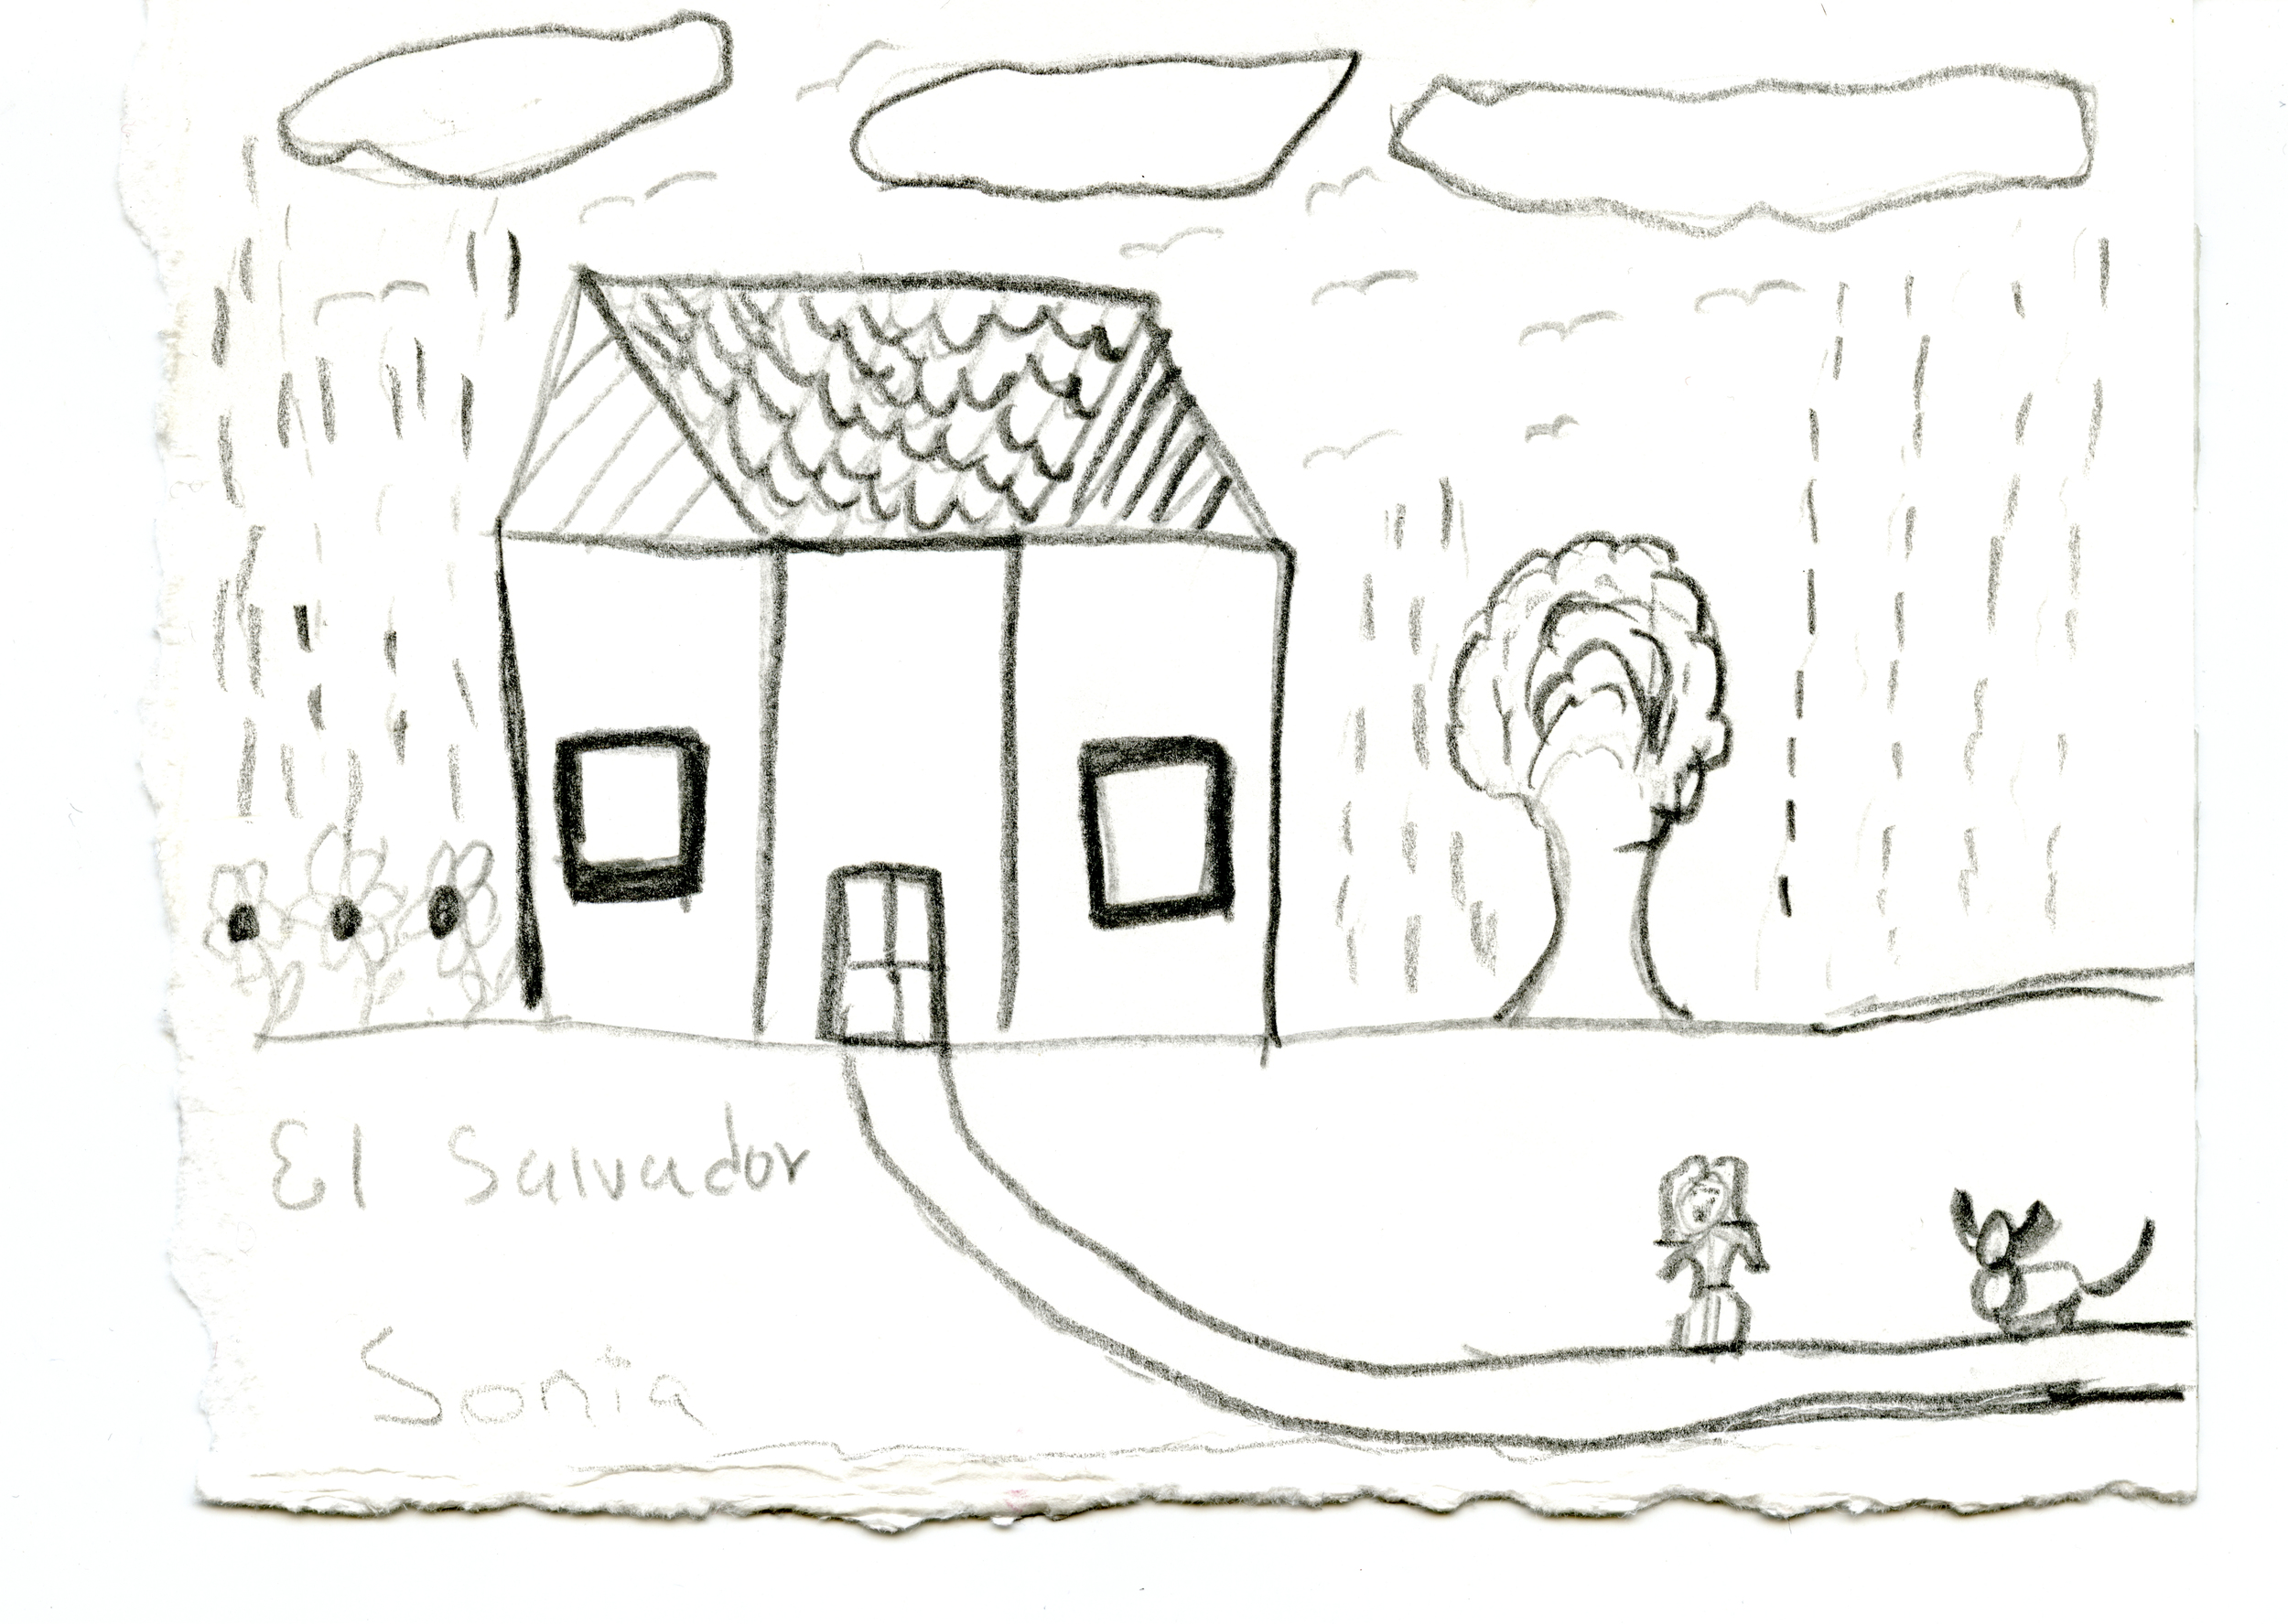 Drawing of her home in El Salvador contributed by Sonia Estrada.